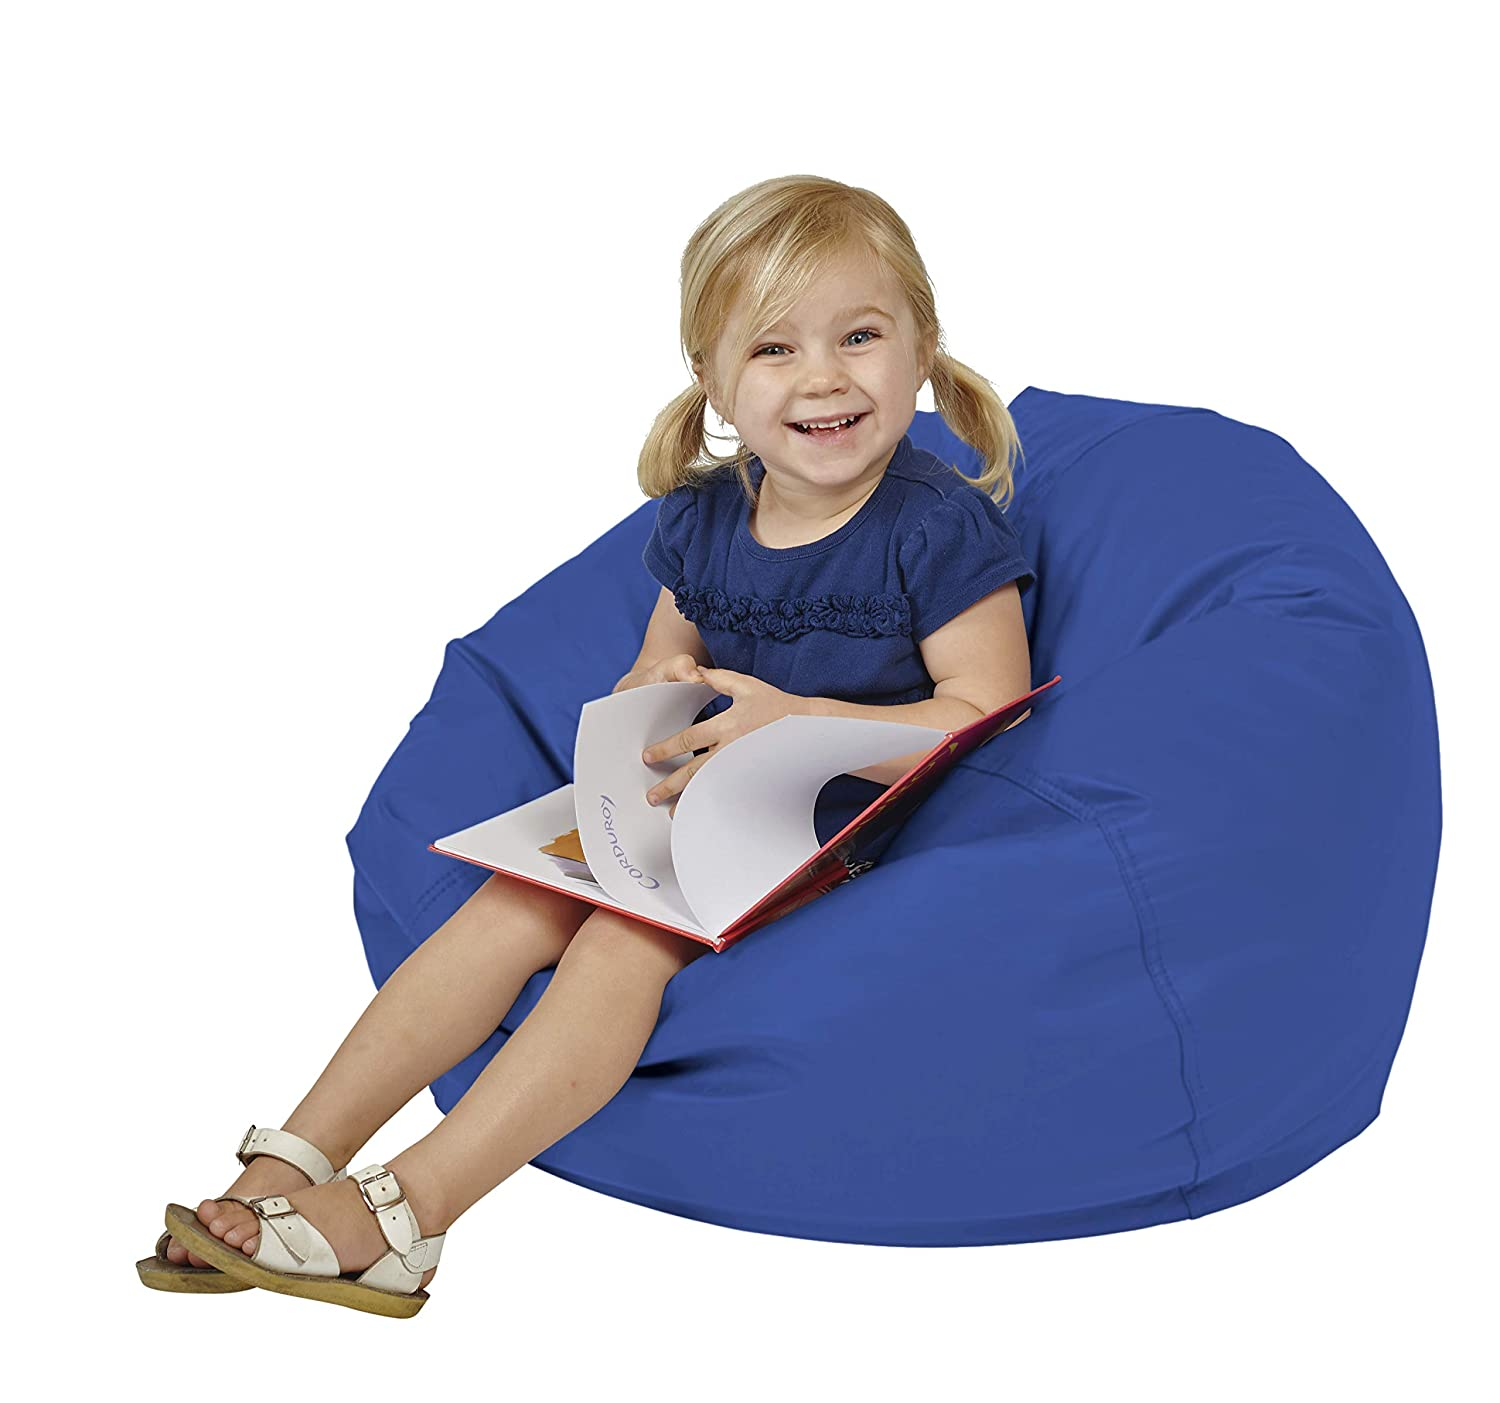 FDP SoftScape Classic 26 Junior Bean Bag Chair, Furniture for Kids, Perfect for Reading, Playing Video Games or Relaxing, Alternative Seating for Classrooms, Daycares, Libraries or Home – Blue